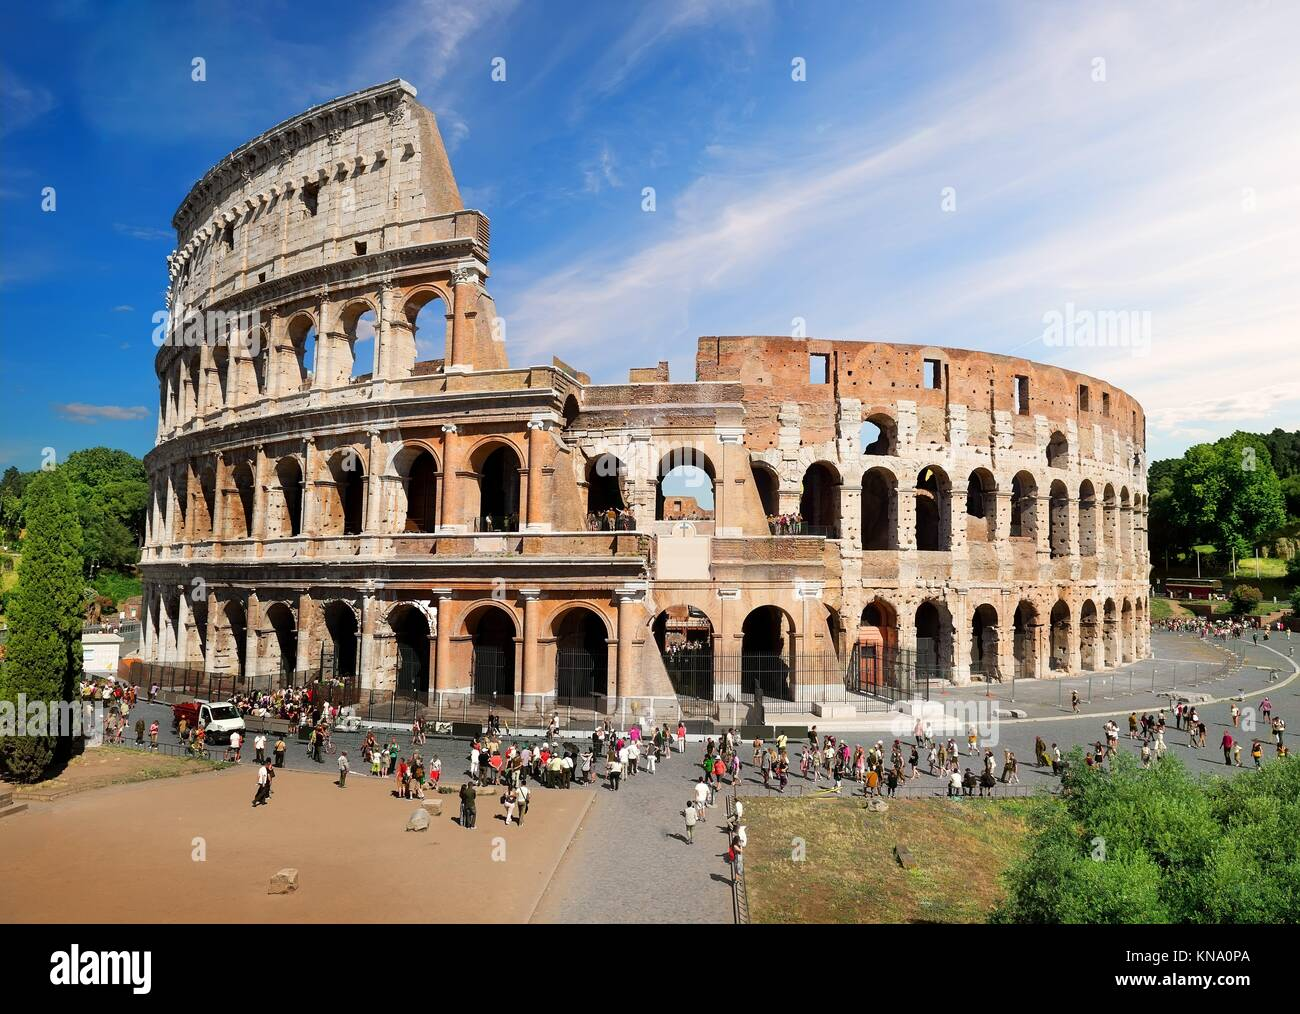 Beautiful roman Colosseum in summer day, Italy. - Stock Image